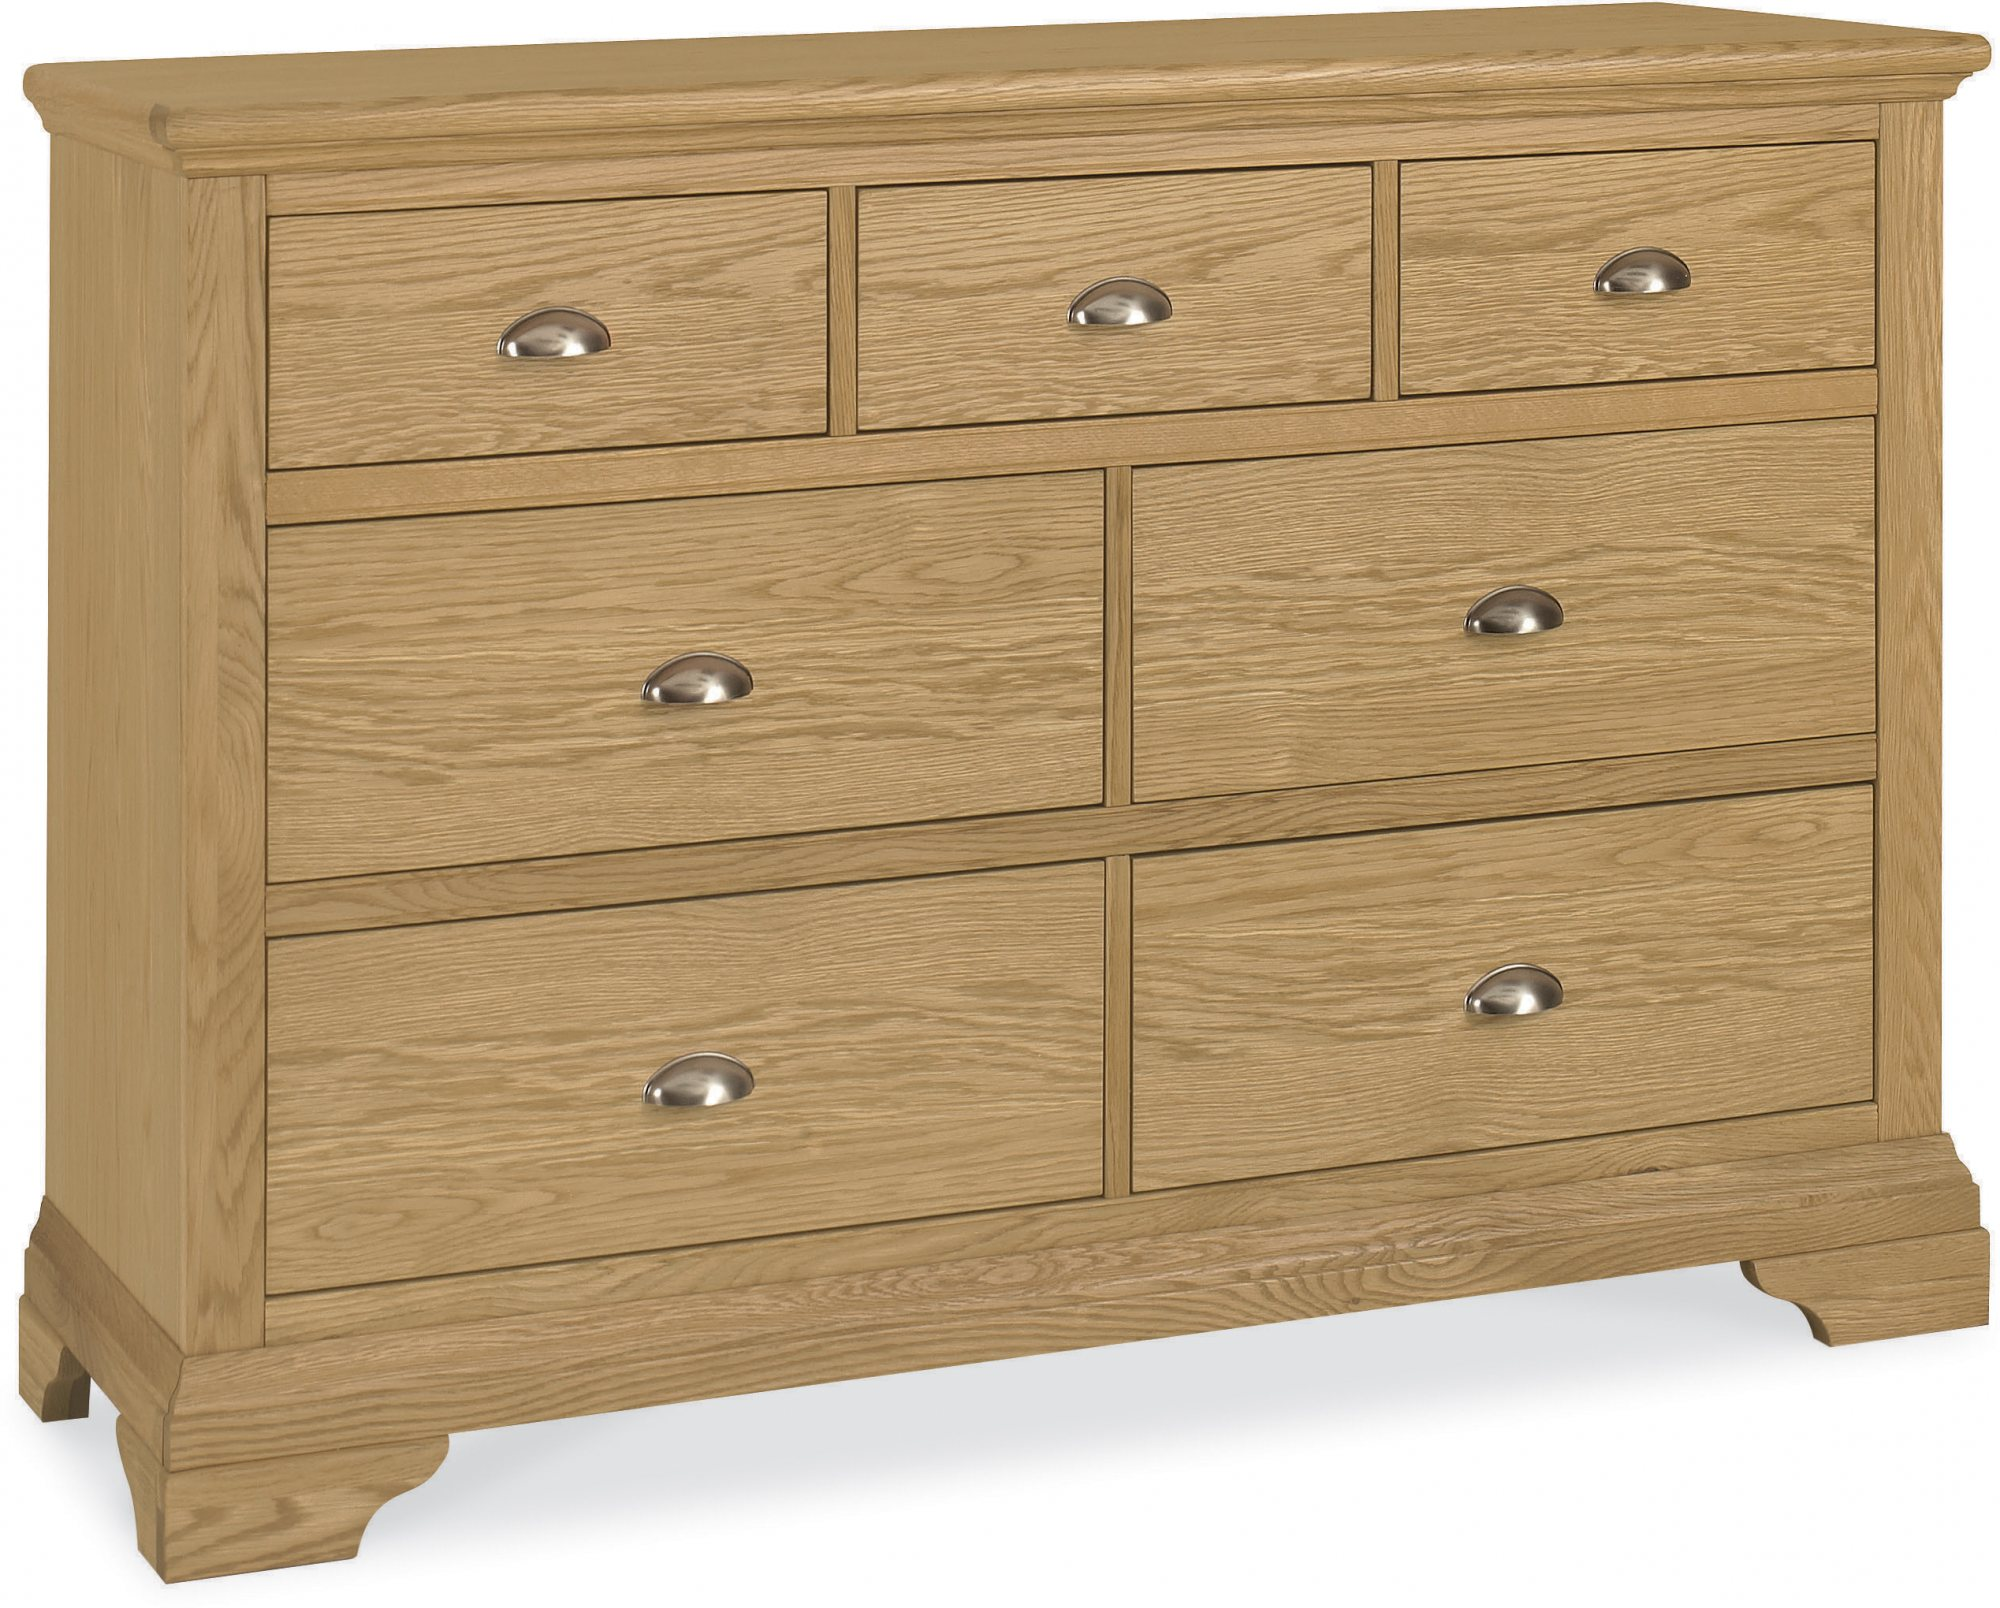 KYRA OAK WIDE CHEST - L138cm x D48cm x H90cm